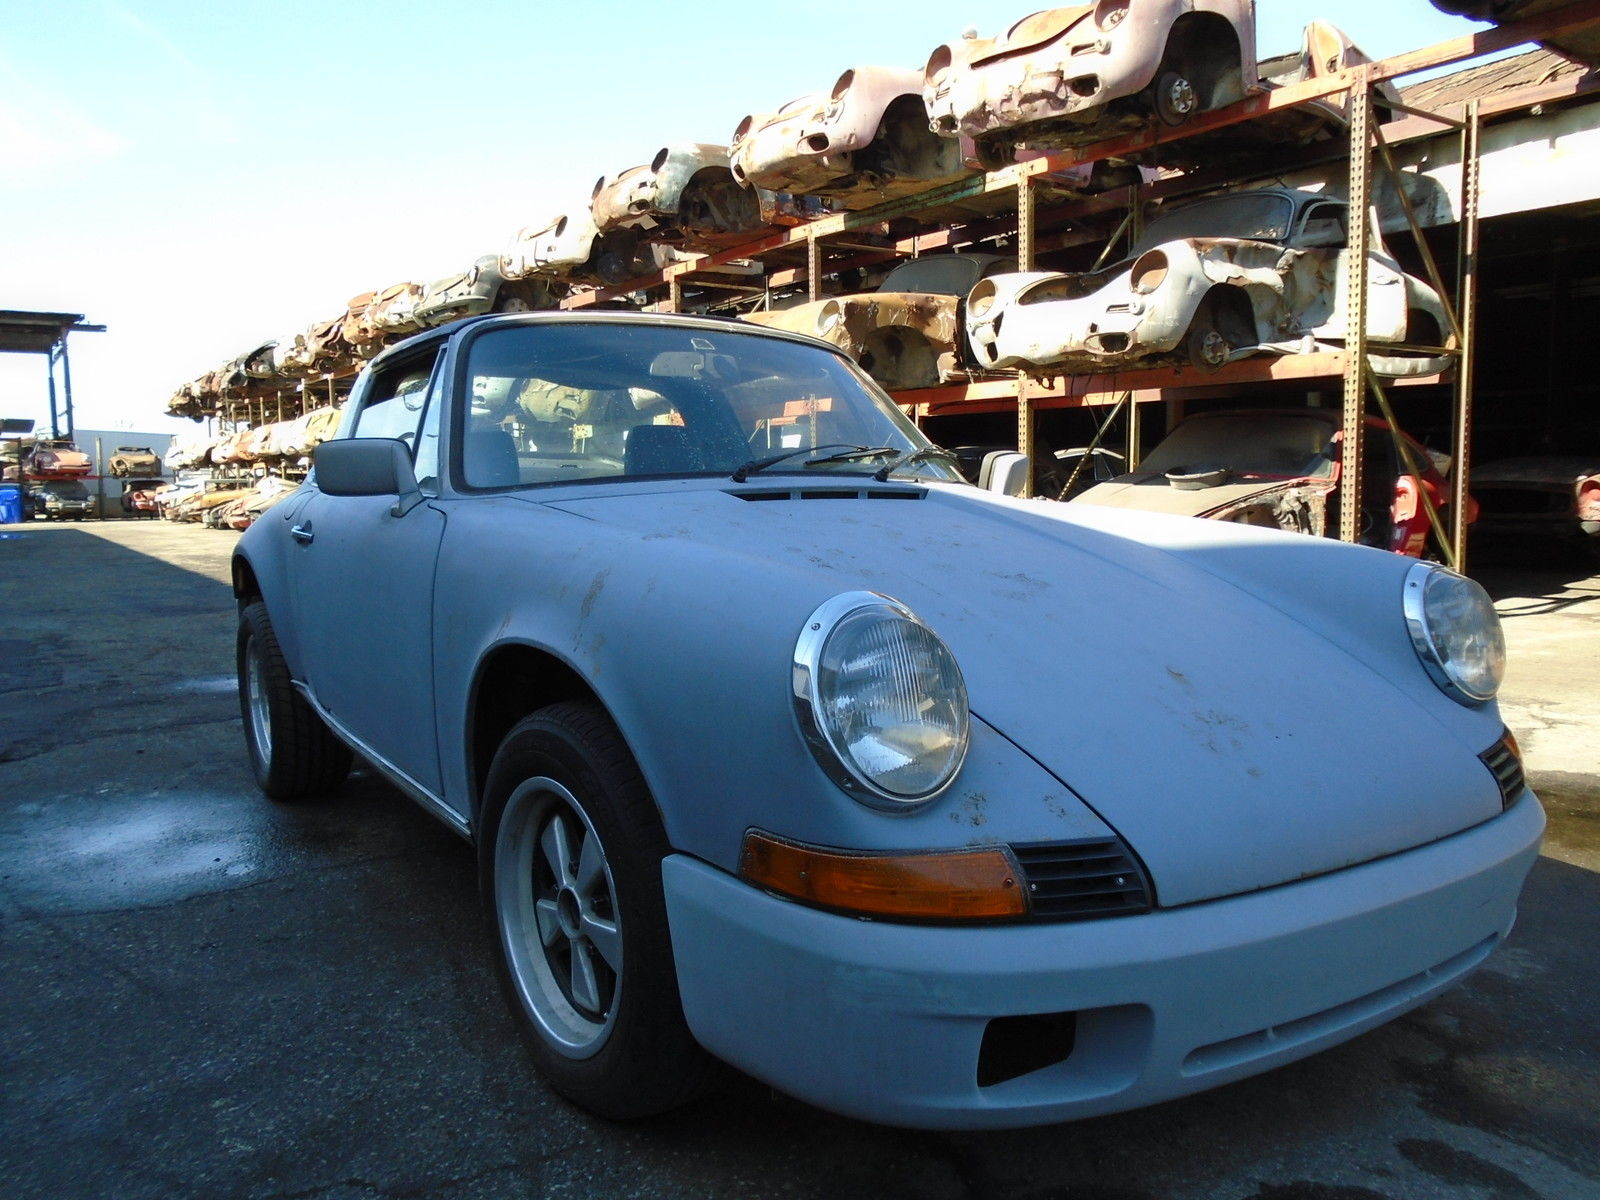 Porsche 911 Restoration Project For Sale >> german classic 1972 Porsche 911 2DR project for sale